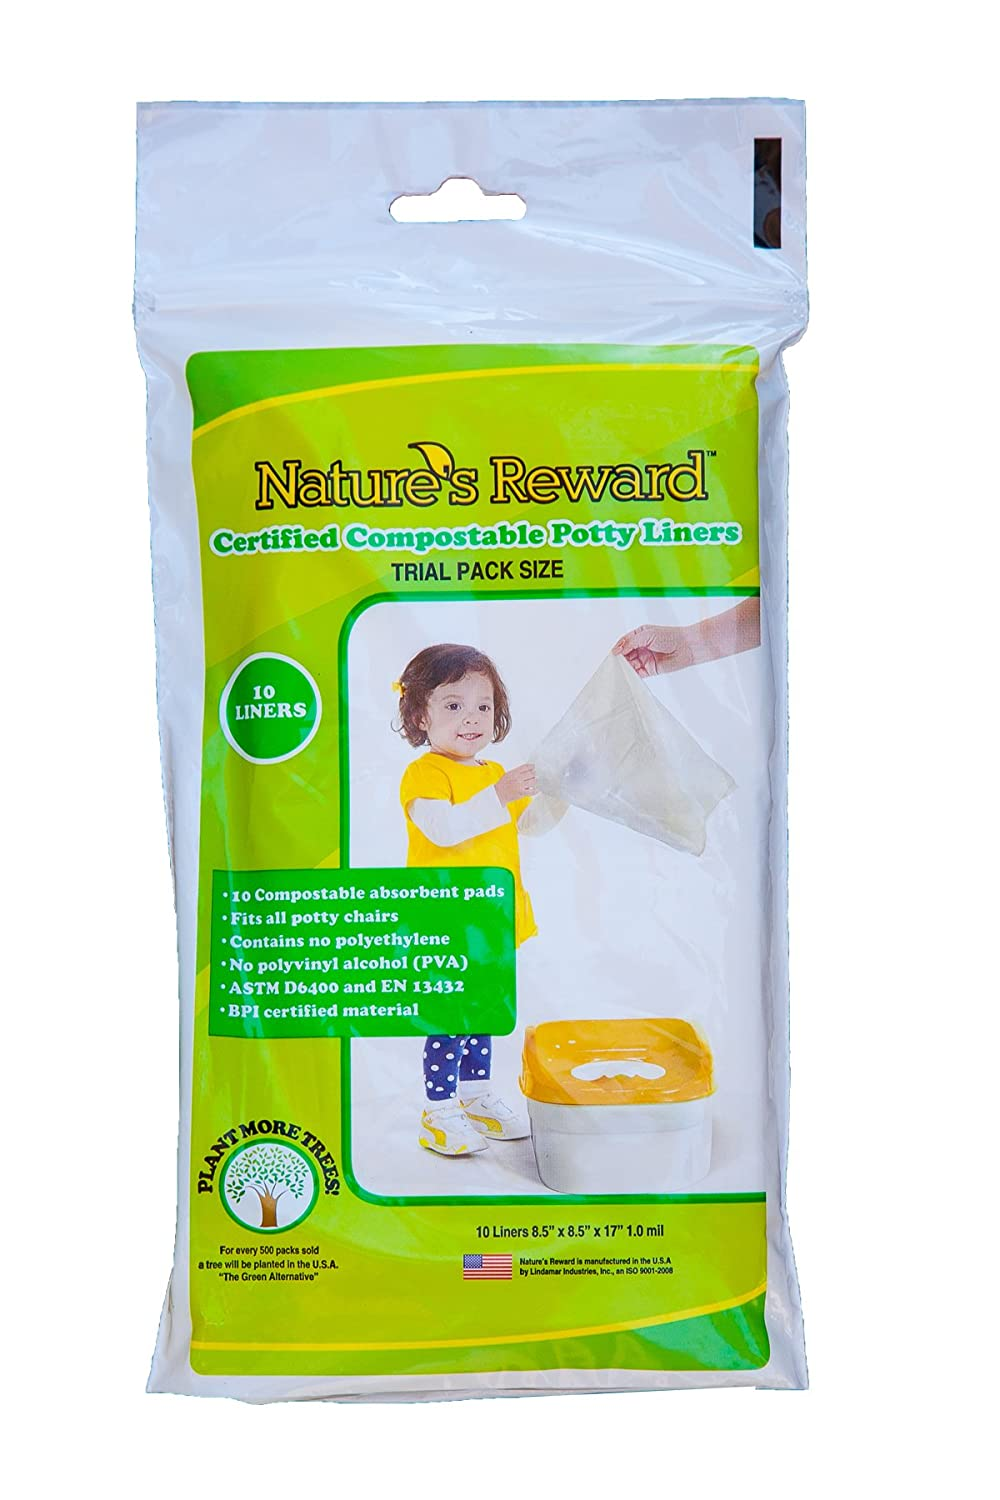 Natures Reward Toddler Potty Chair Liners, Eco-Friendly, Fits Most Potty Chairs: Trial Pack - 10 Liners